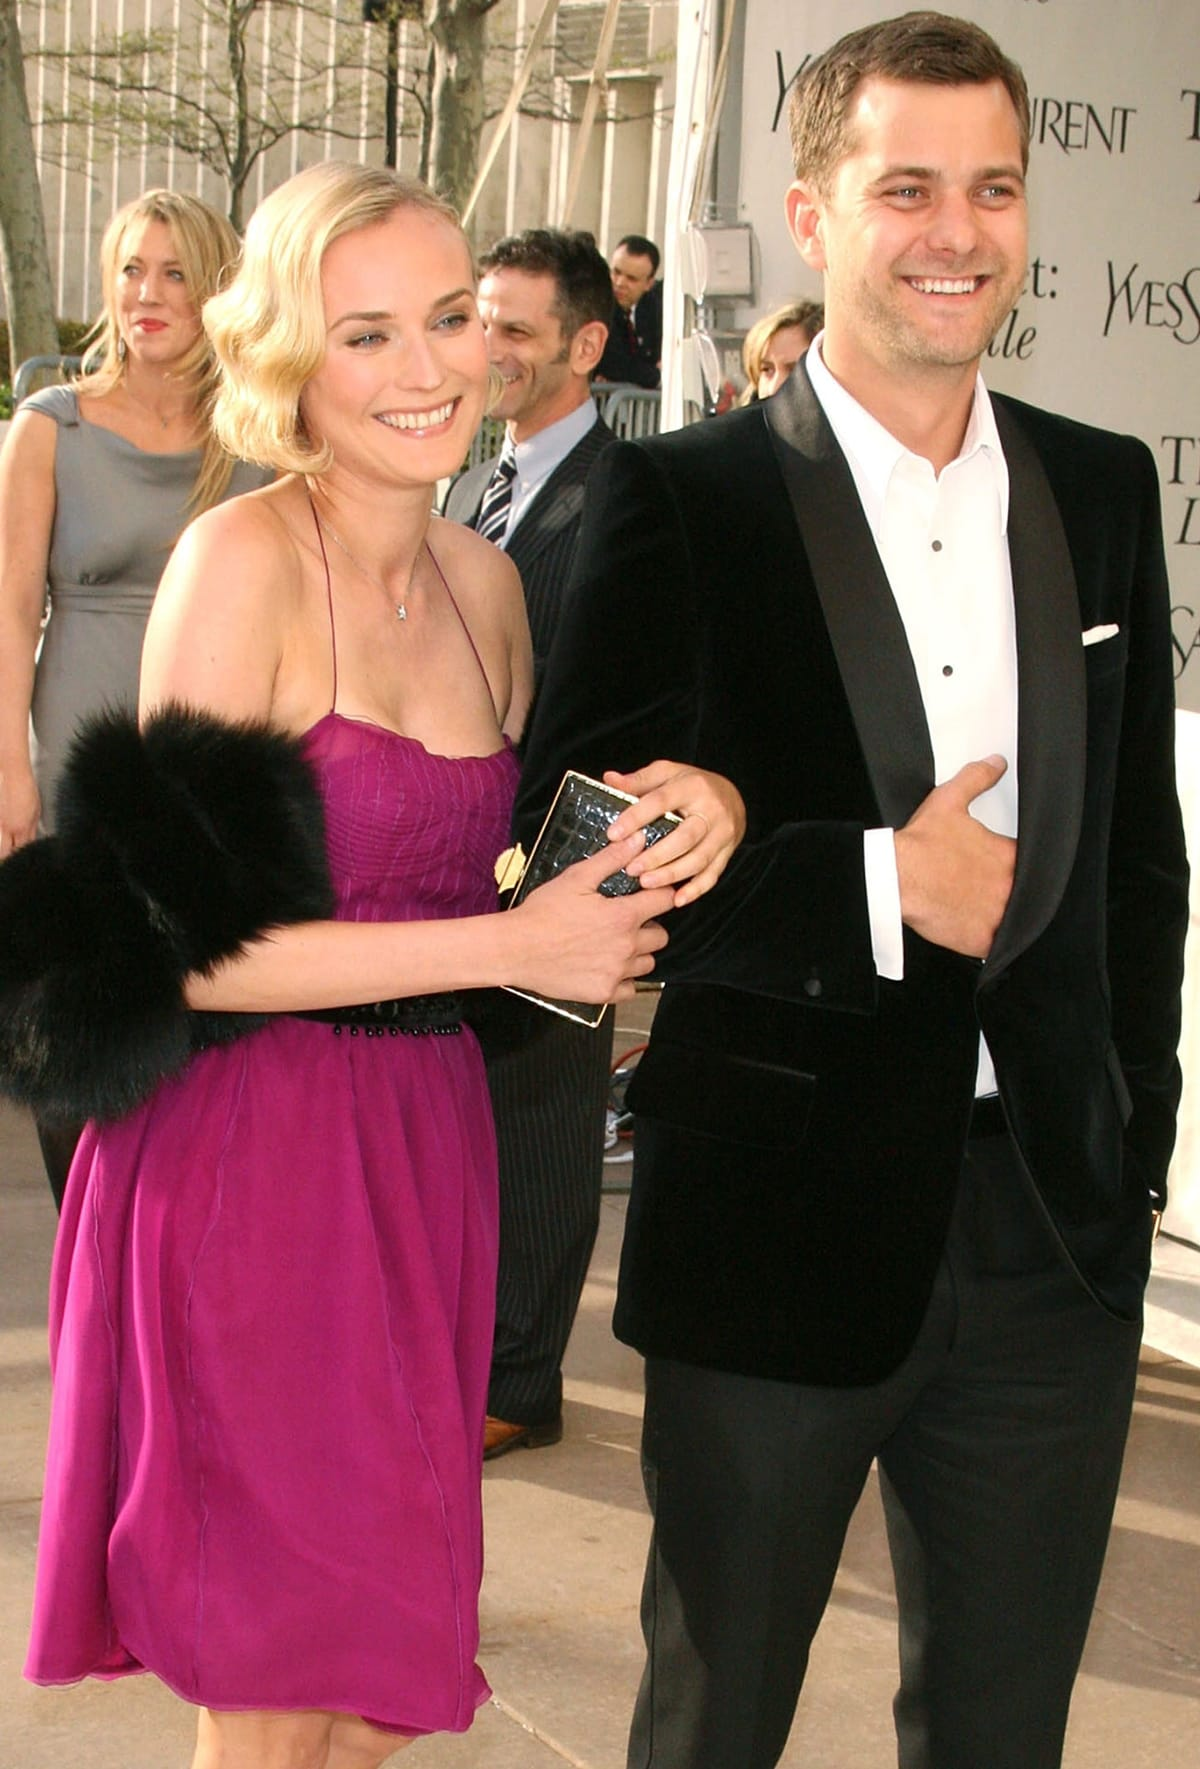 Joshua Jackson and Diane Kruger dated for ten years before breaking up in July 2016